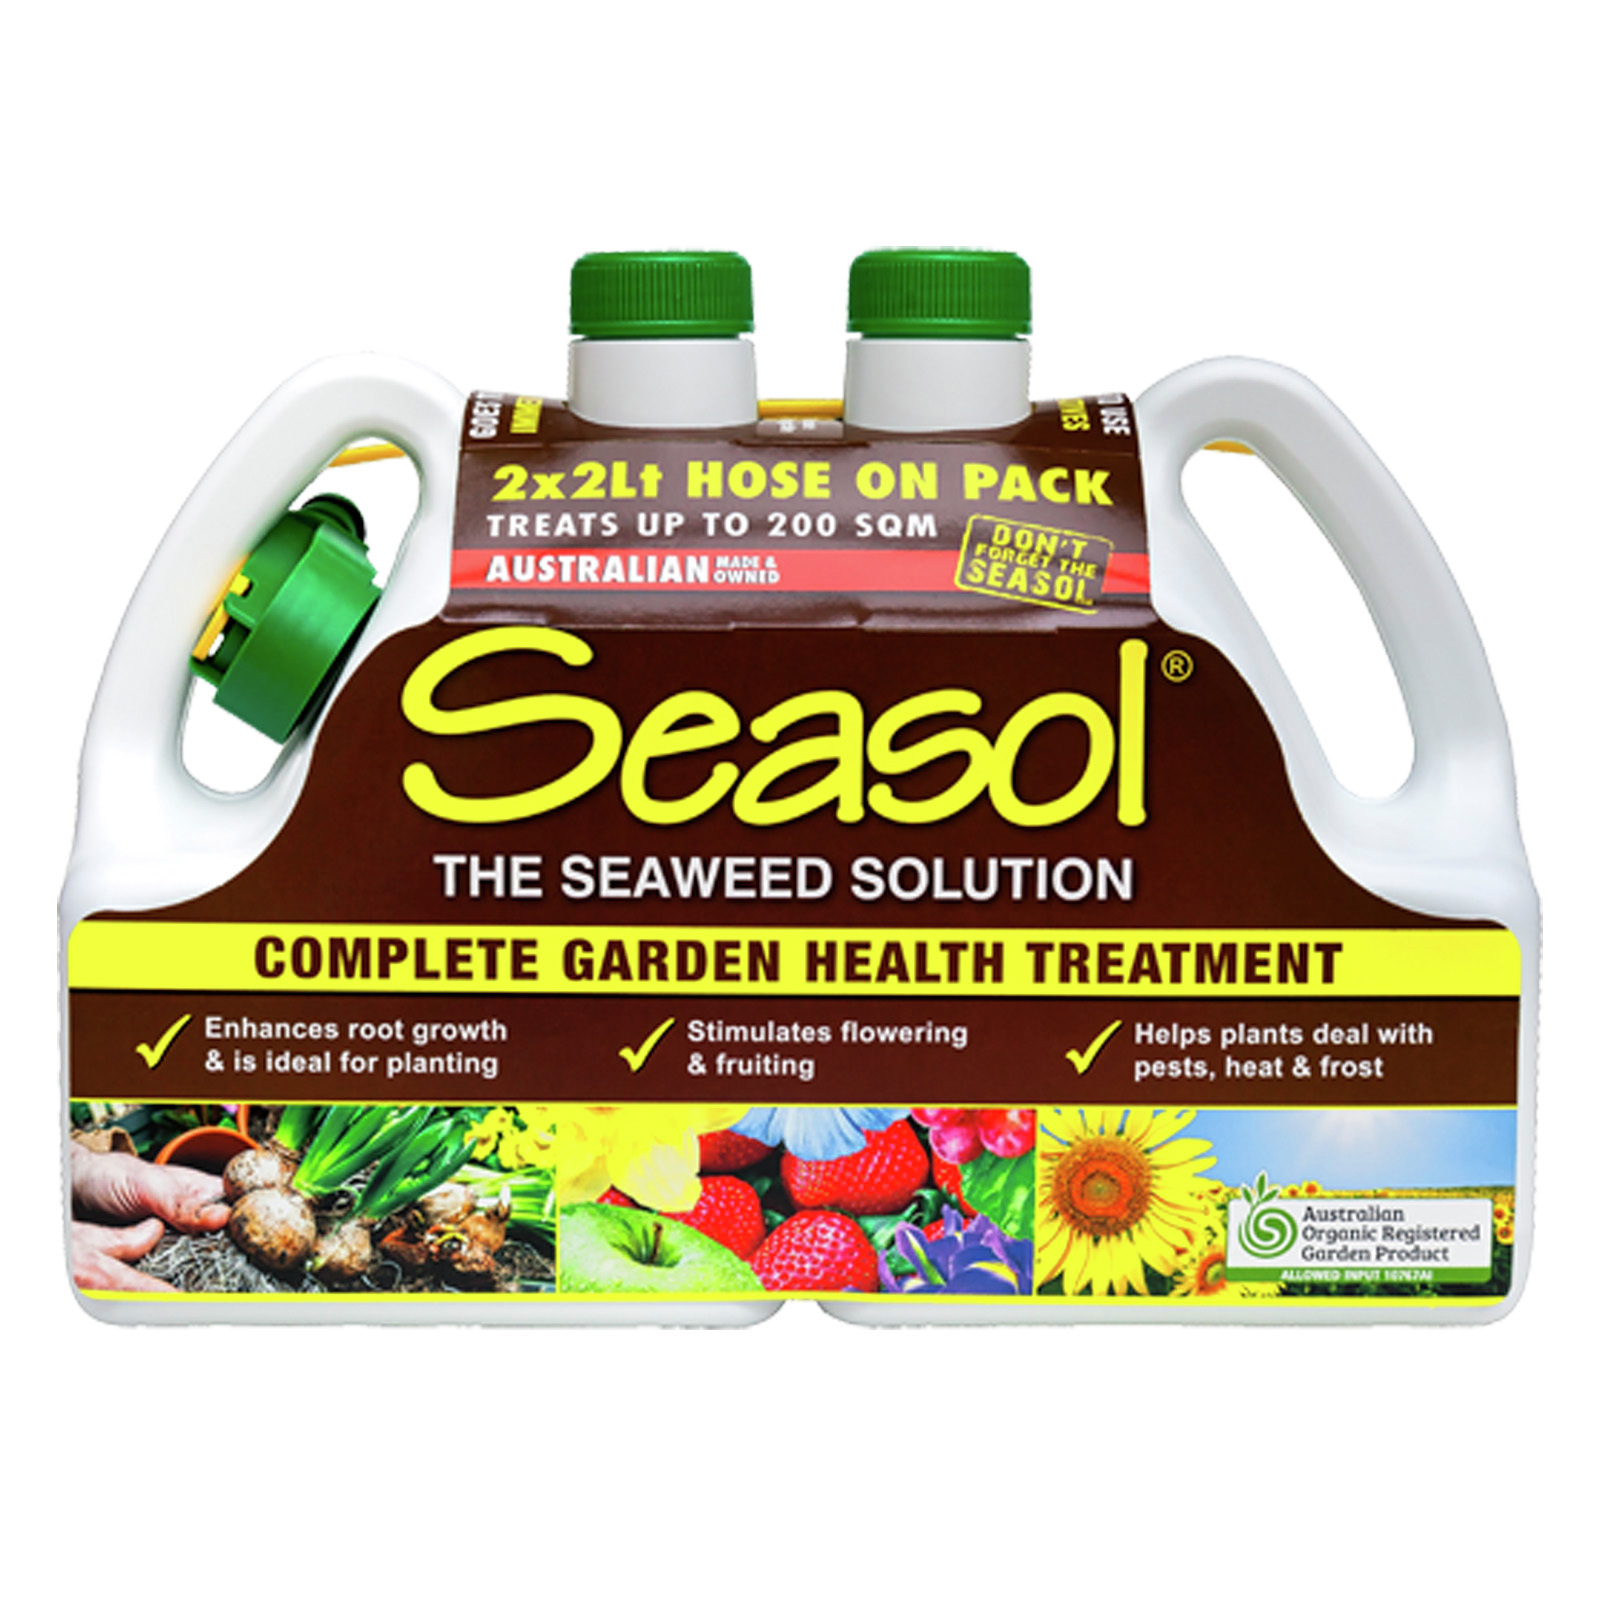 Seasol 2 x 2L Hose On Complete Garden Health Treatment - Twin Pack